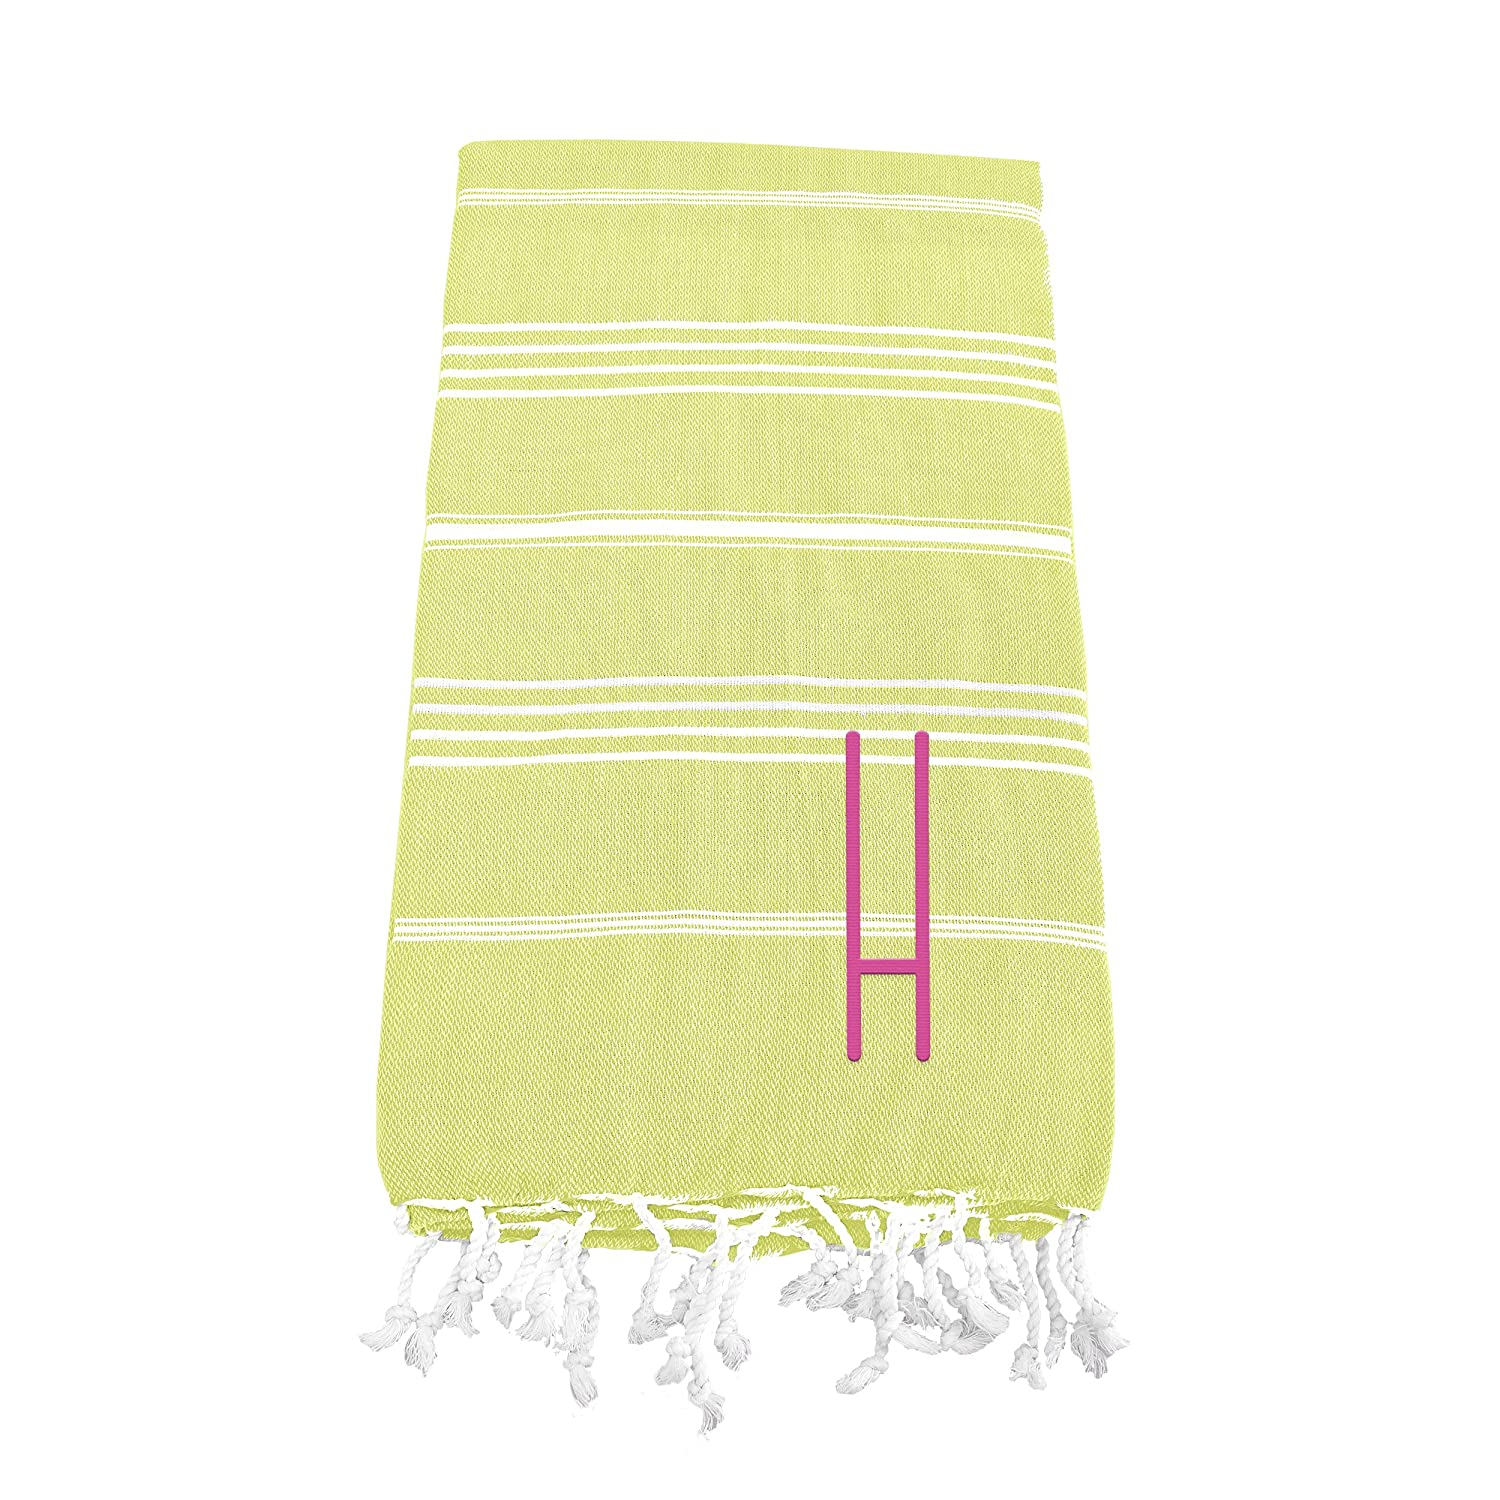 Cathy's Concepts Personalized Turkish Towel, Dark Blue, Letter E Cathy's Concepts 1400DB-E